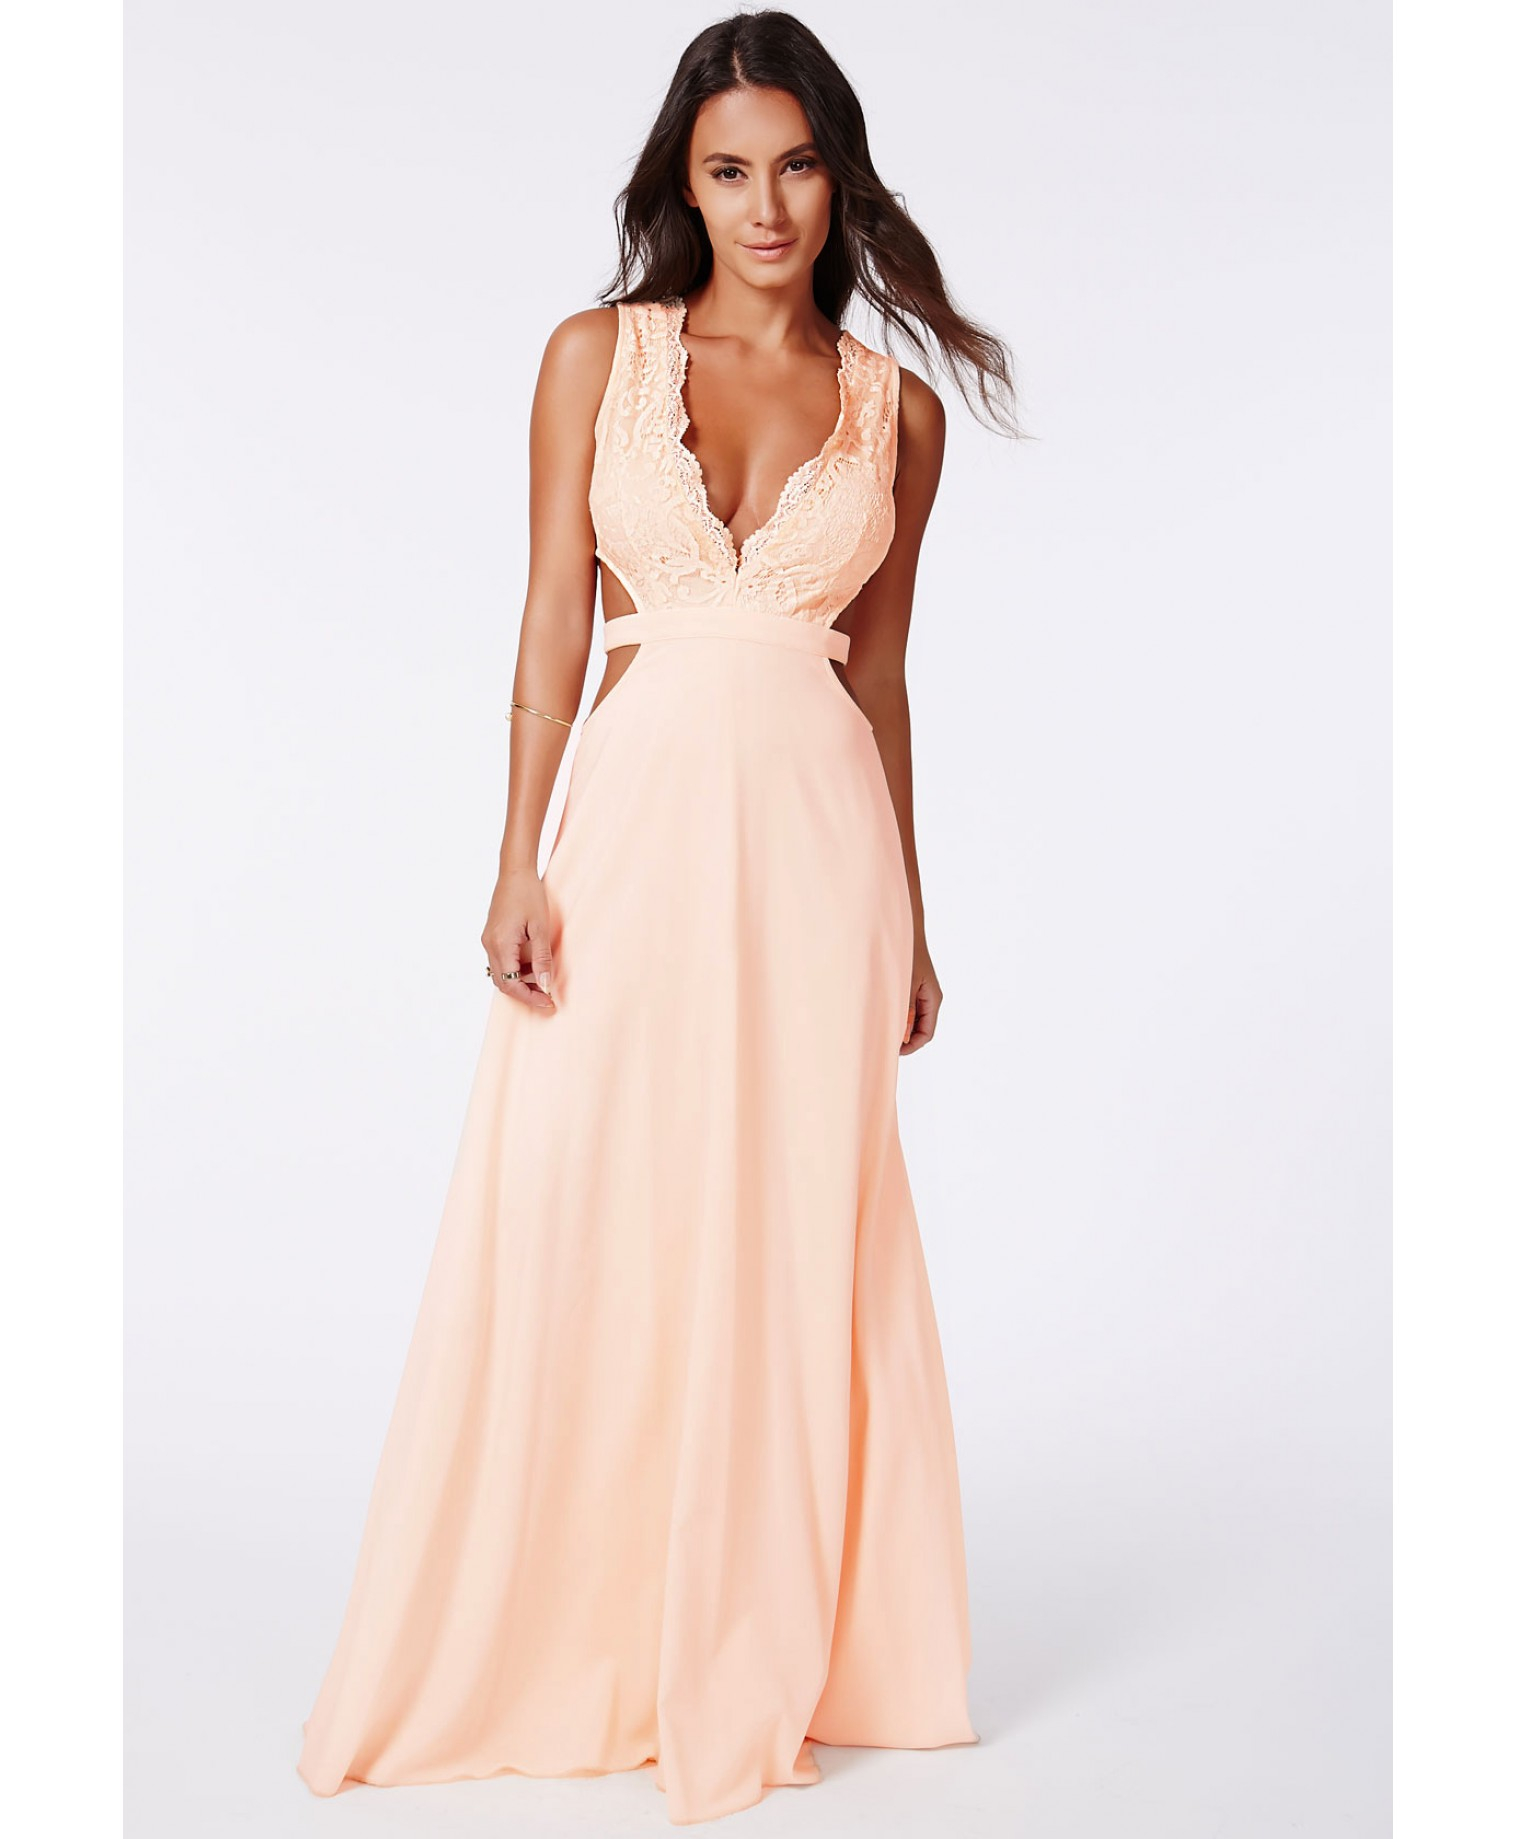 missguided-beige-bakiya-nude-lace-cut-out-maxi-dress-campaign-product-1-21475861-0-945876828-normal.jpeg